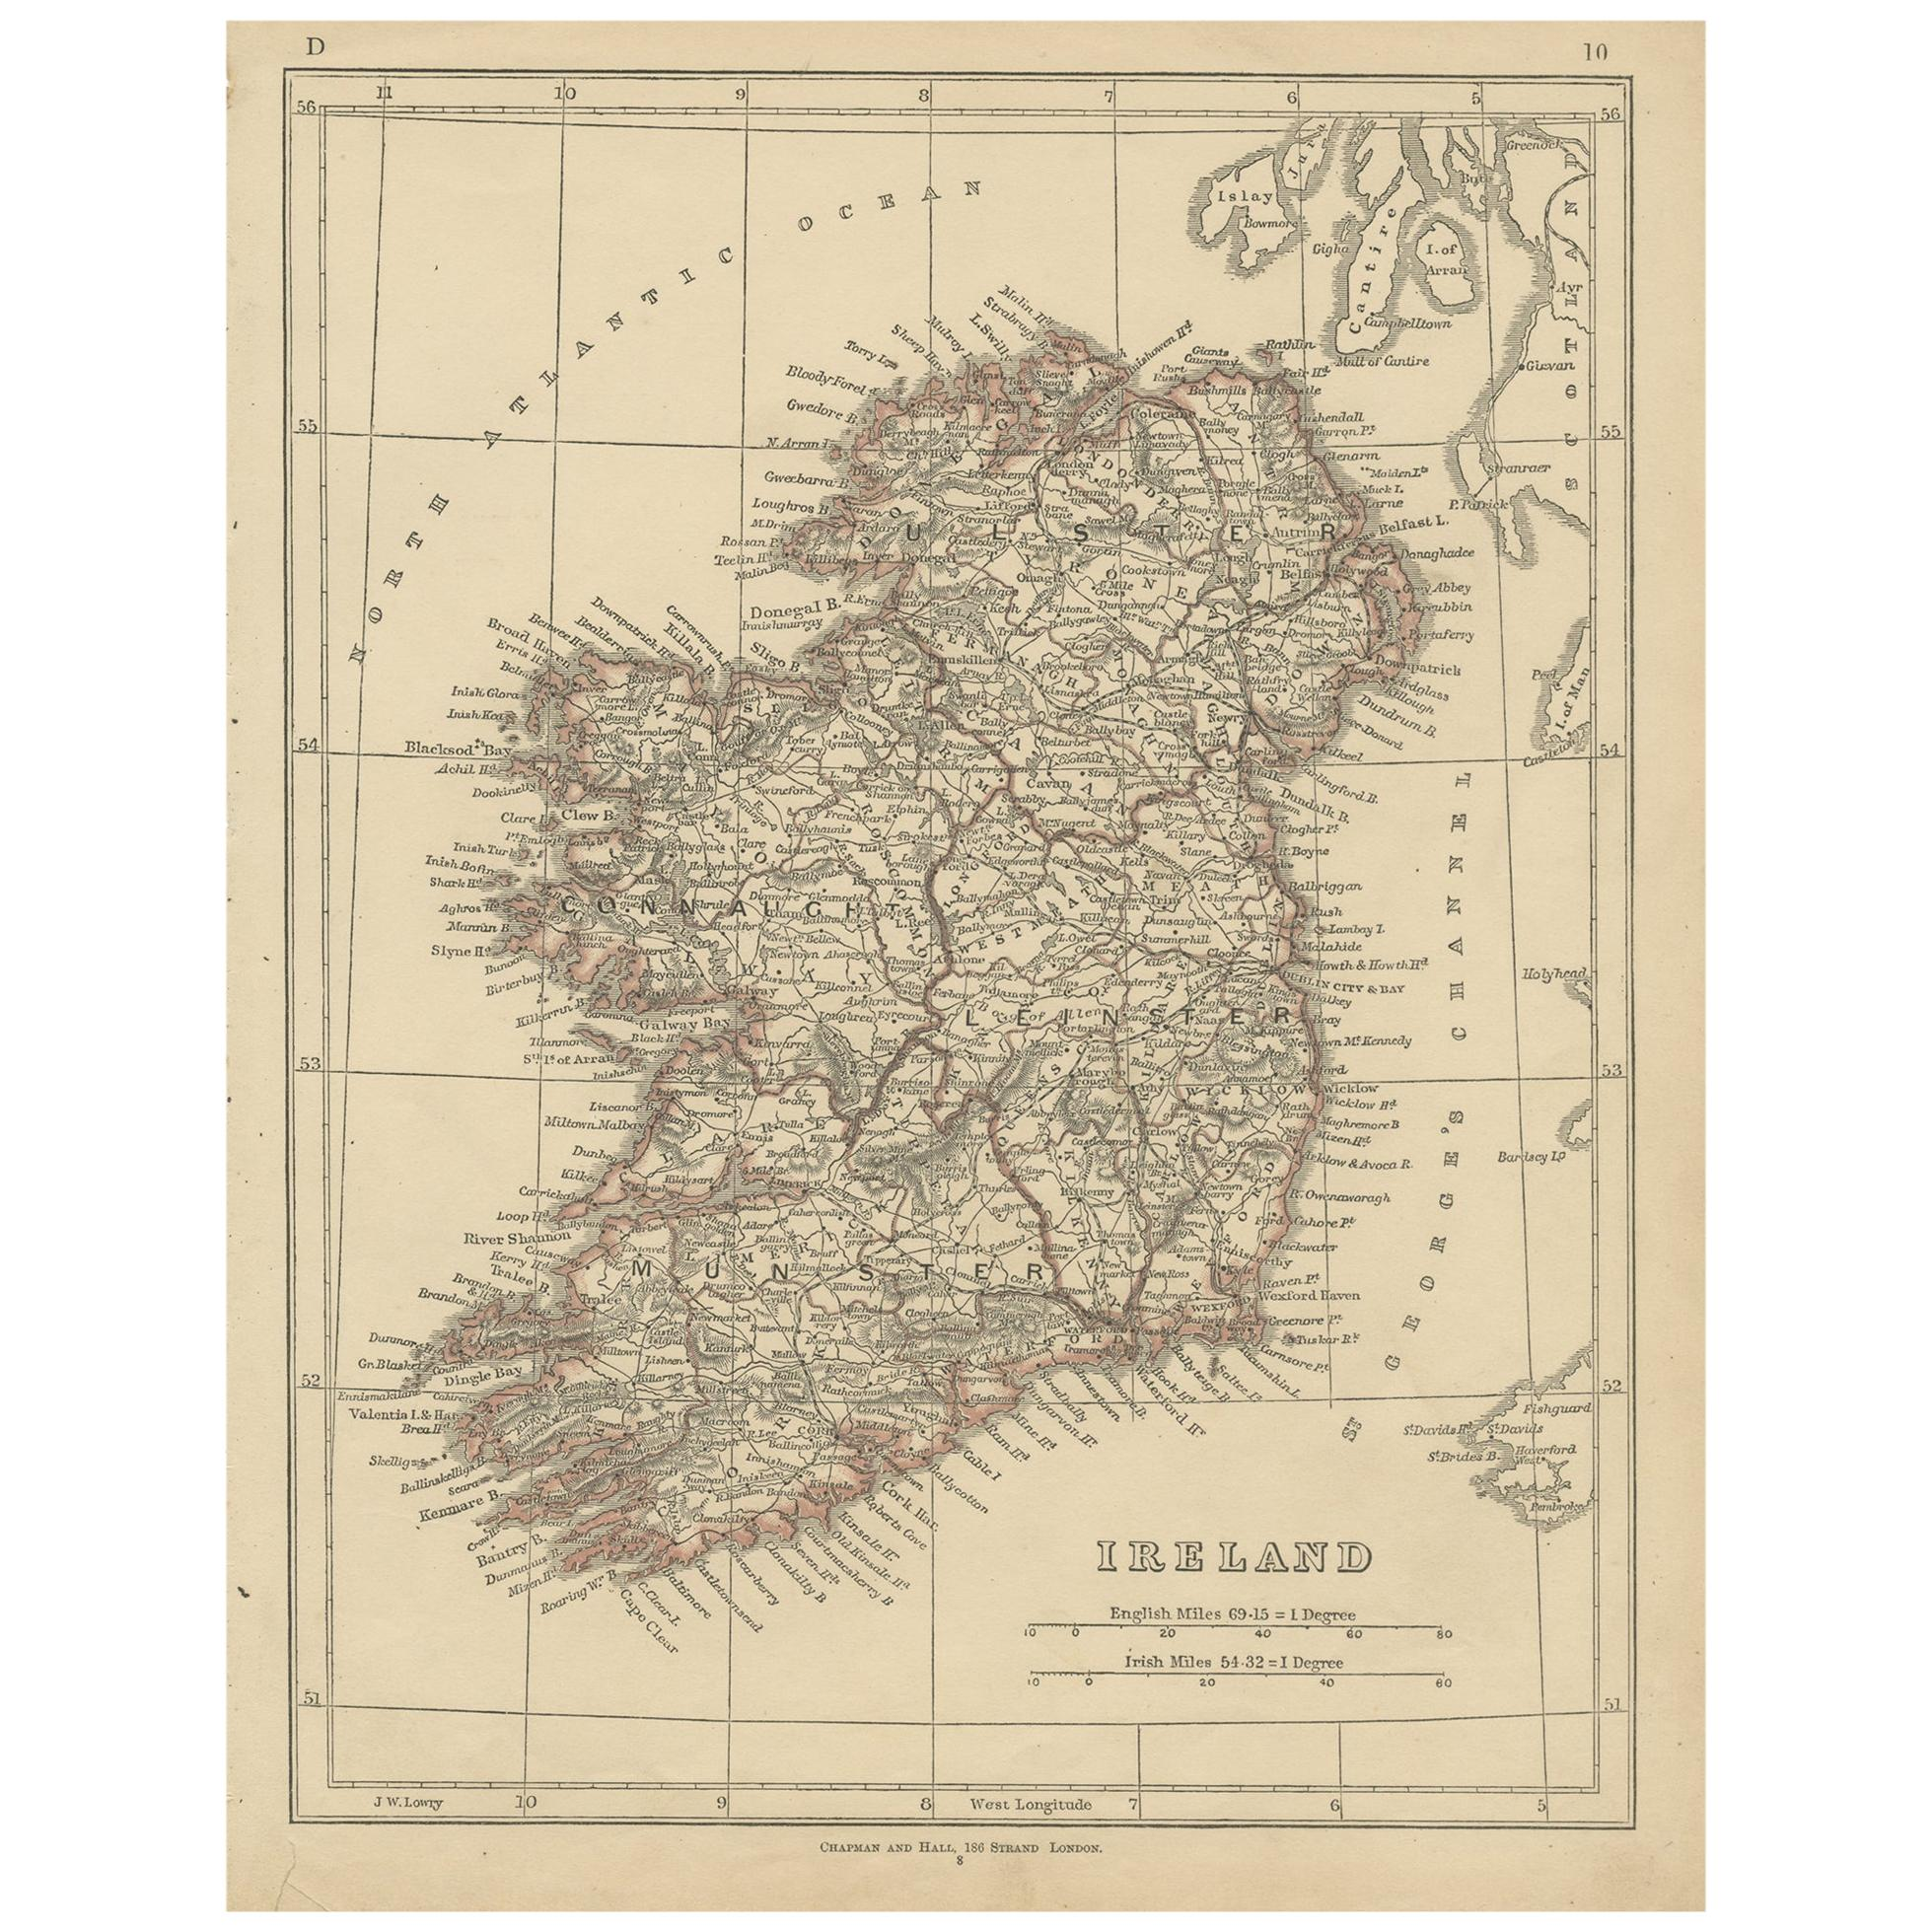 Antique Map of Ireland by Lowry, 1852